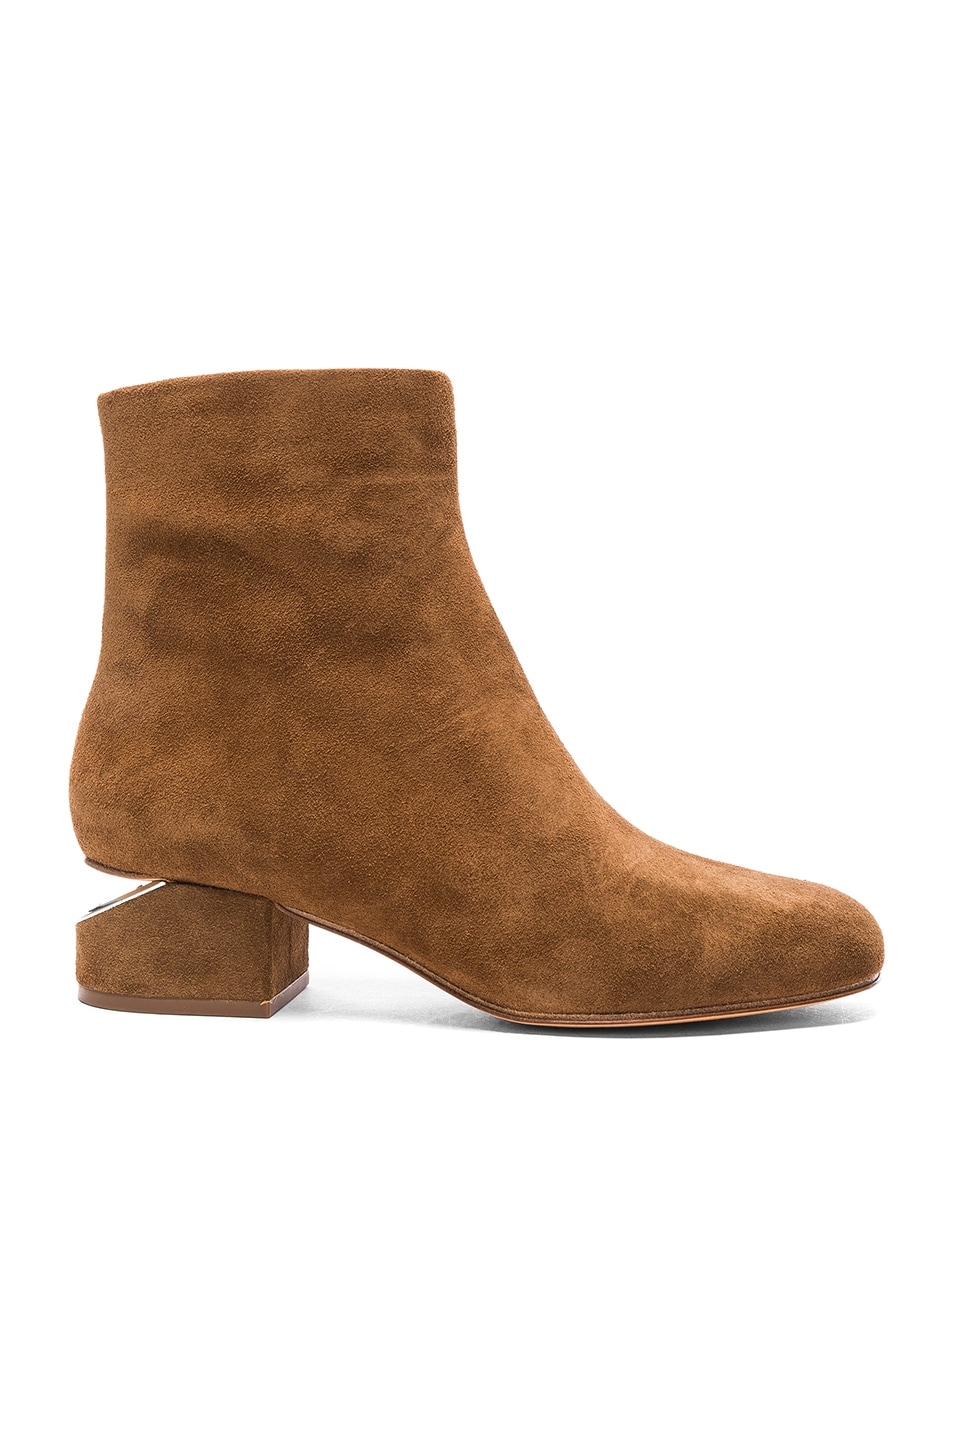 Image 1 of Alexander Wang Suede Kelly Boots in Dark Truffle